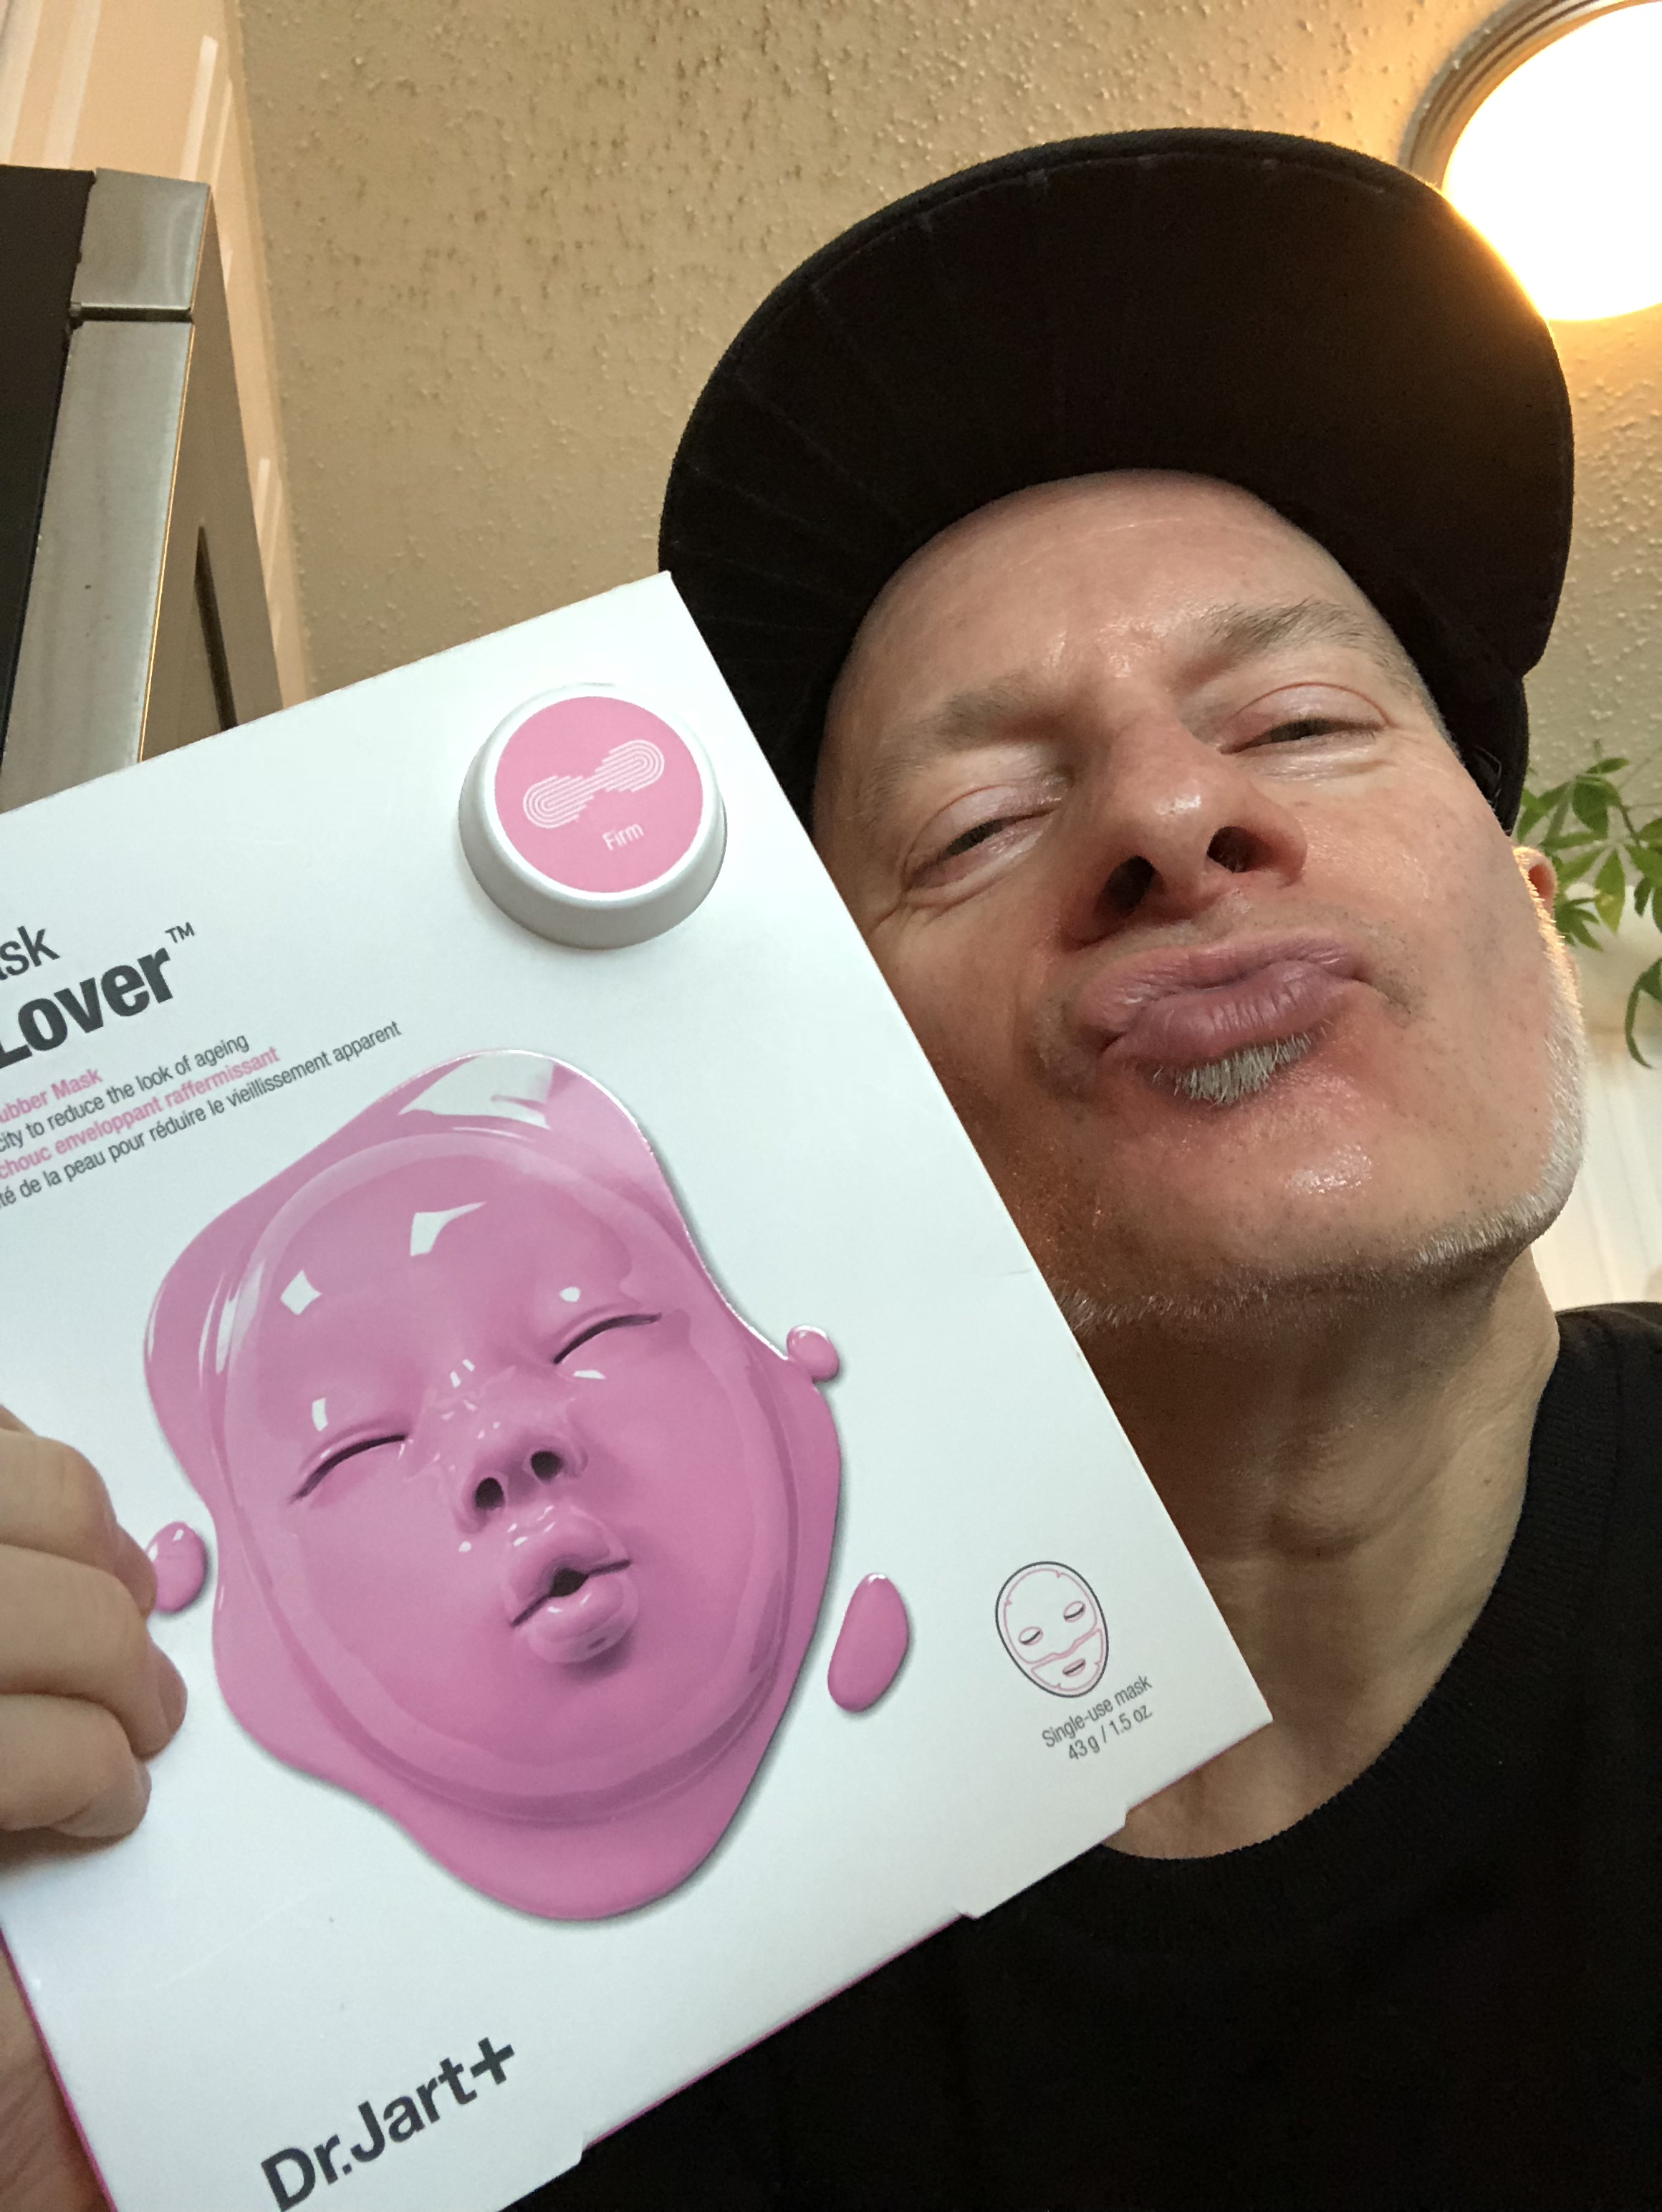 Don't be such a baby. The Dr. Jart Lover Rubber Masks are cool!